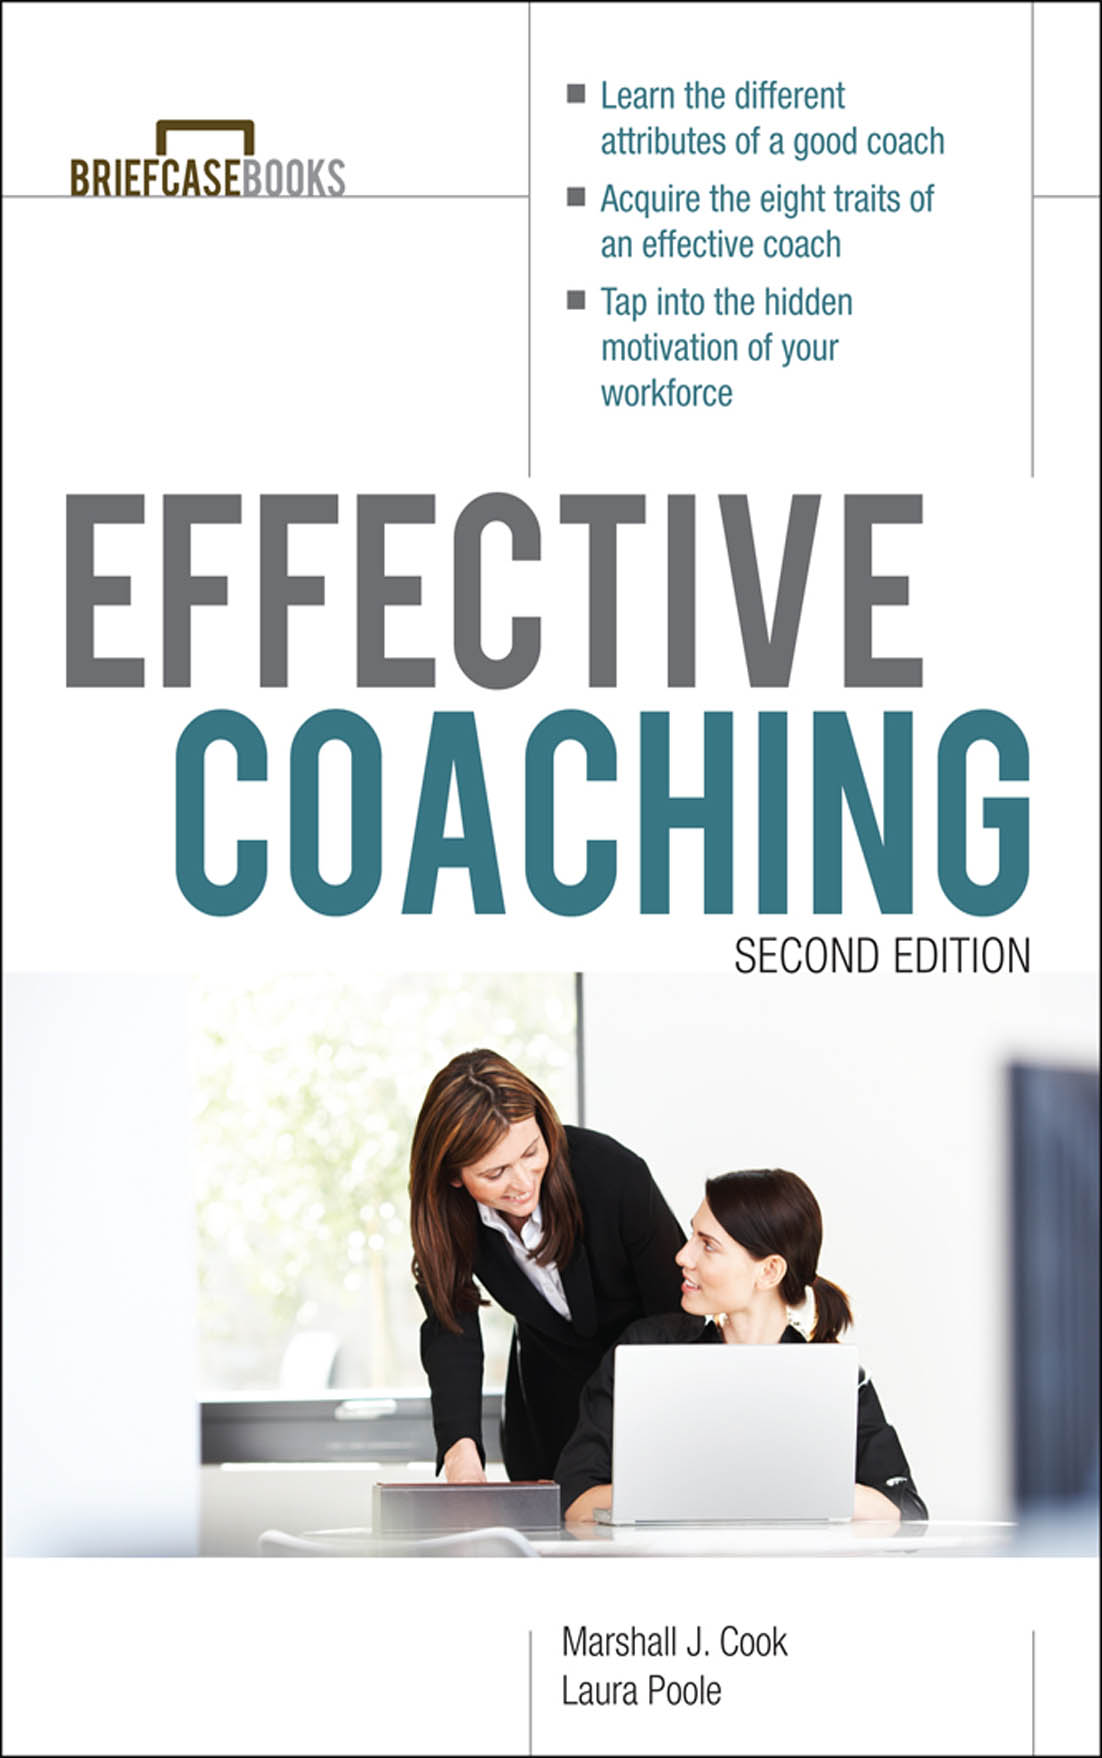 Download Ebook Manager's Guide to Effective Coaching, Second Edition (2nd ed.) by Marshall Cook Pdf